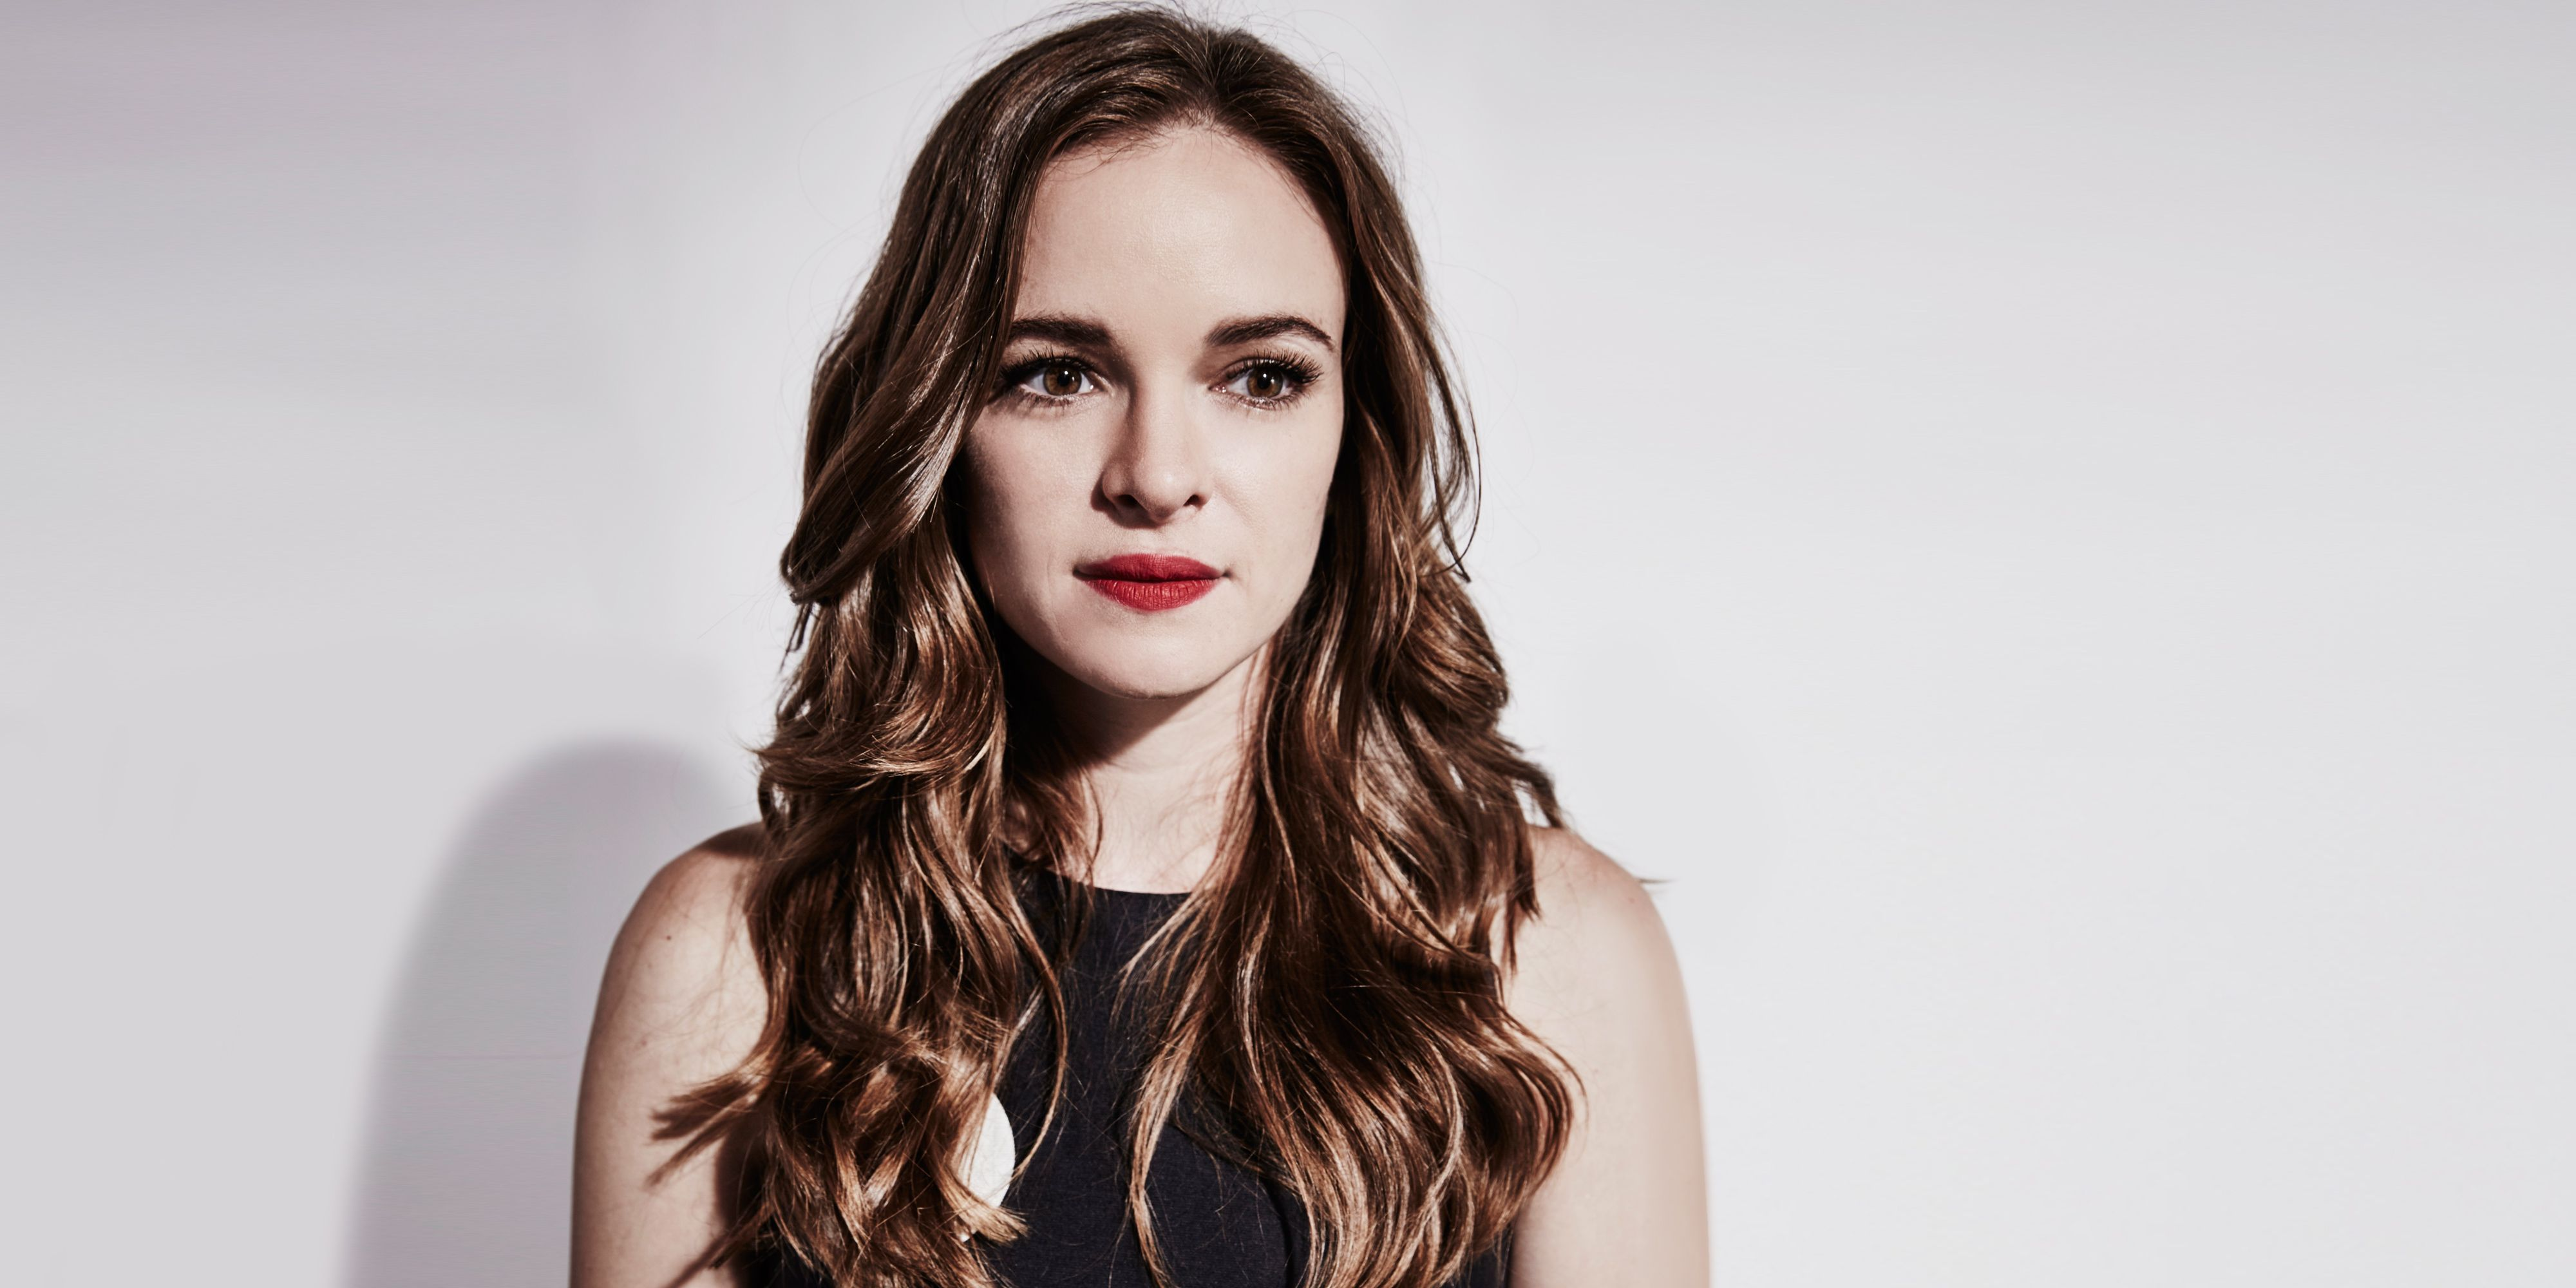 Watch Danielle Panabaker video